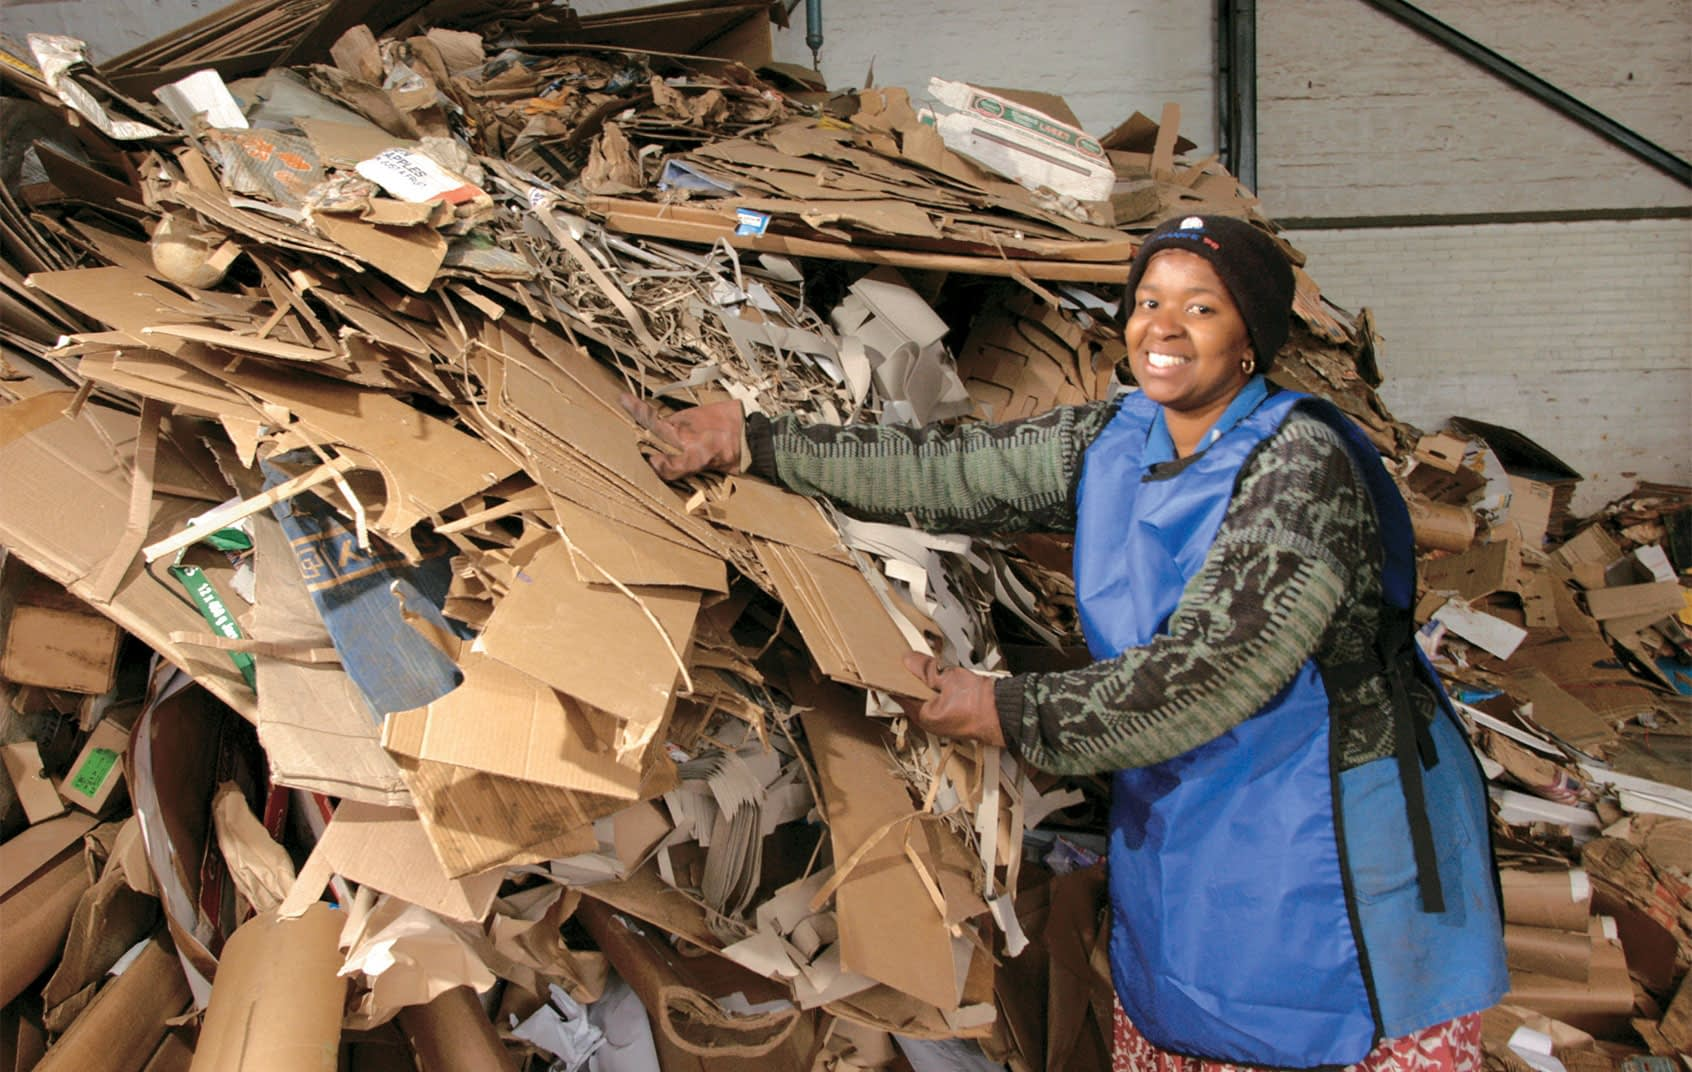 Recycle-your-paper-and-declare-a-war-on-waste-Credit-Sappi-ReFibre